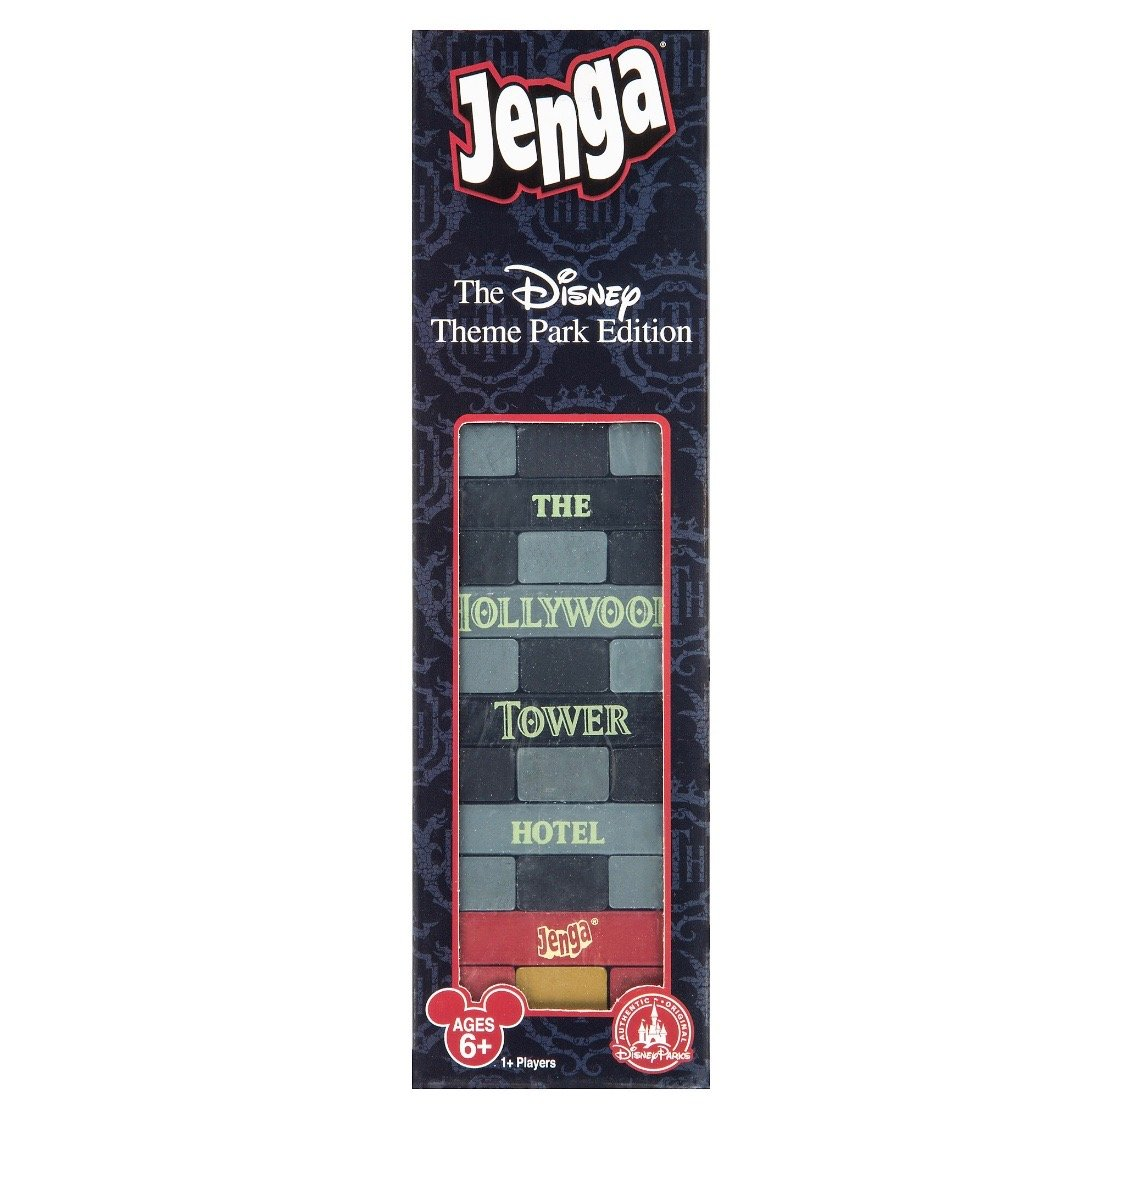 Disney Theme Park Edition Hollywood Tower Hotel Jenga Game New with Box by